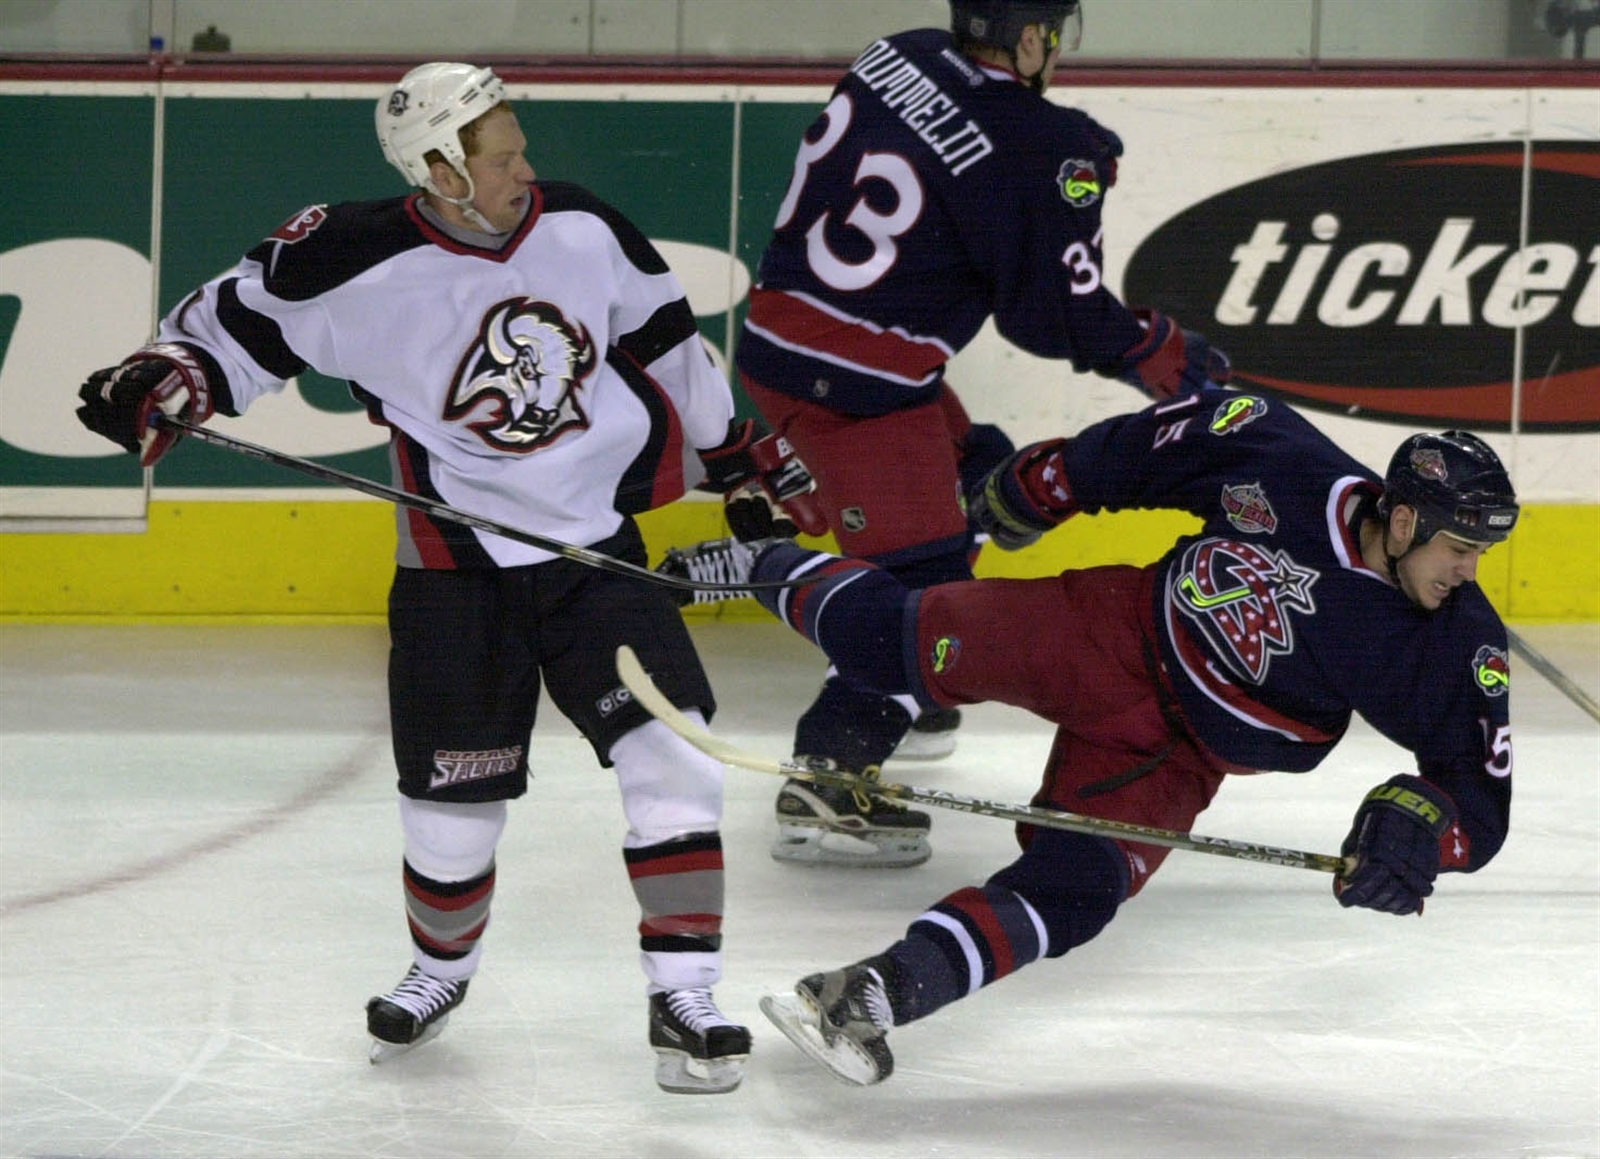 Campbell runs into Columbus' Mike Maneluk during the first period of play in a 2001 game at HSBC Arena.